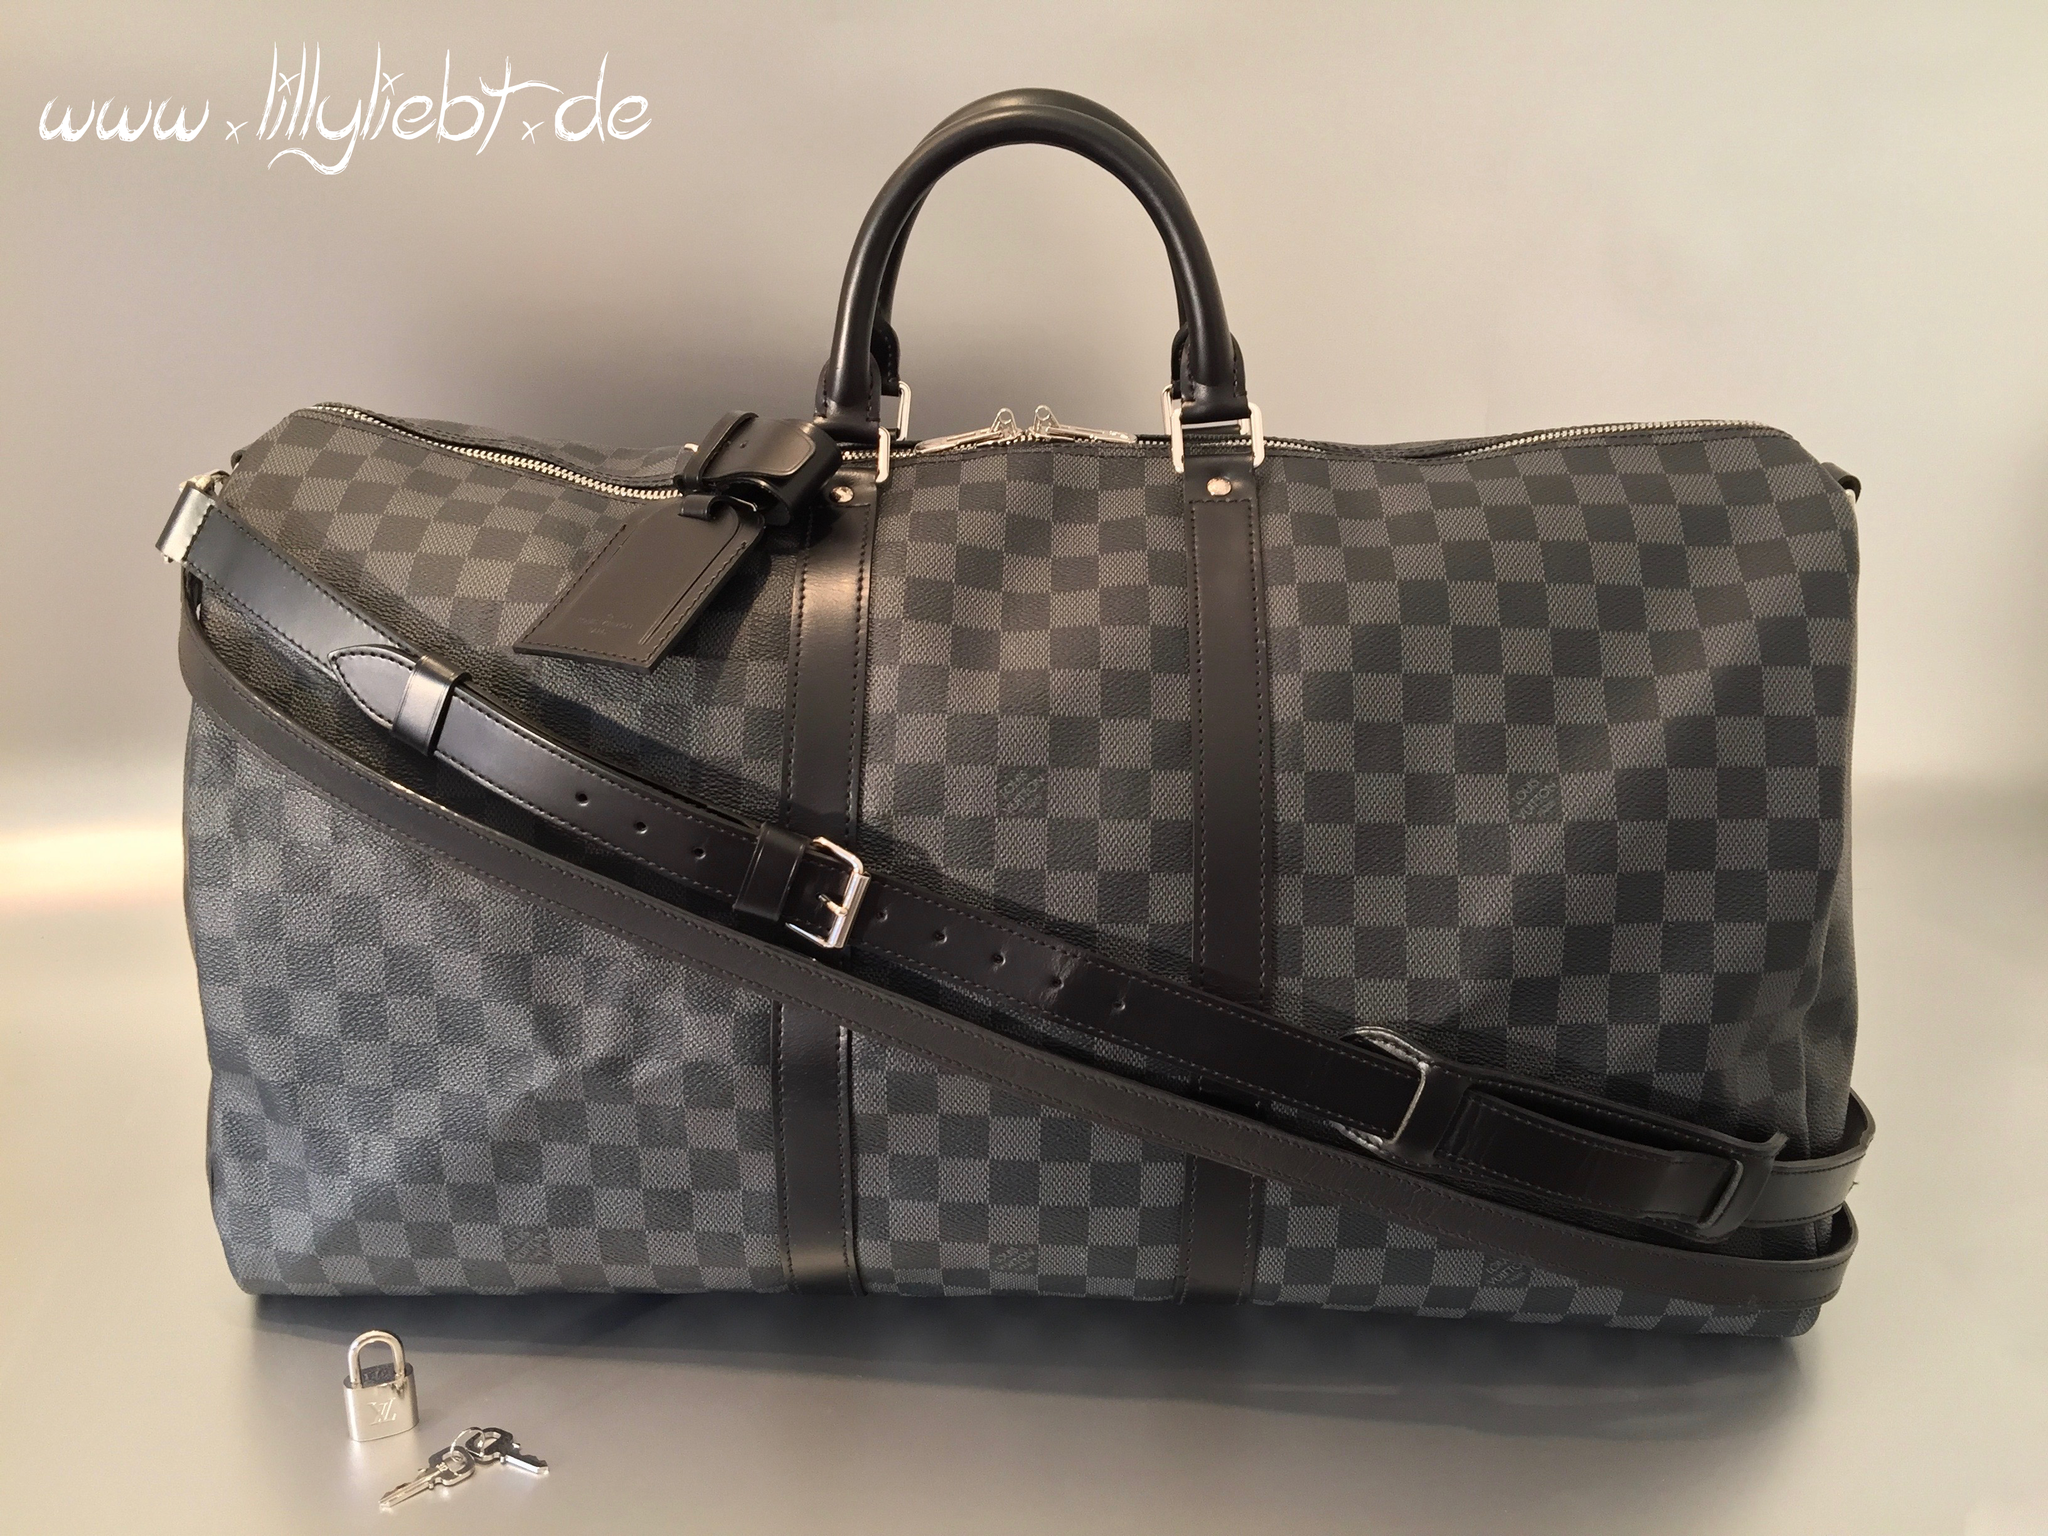 d3fde06a35536 Louis Vuitton Damier Graphite Keepall Bandouliere 55 - Ankauf ...